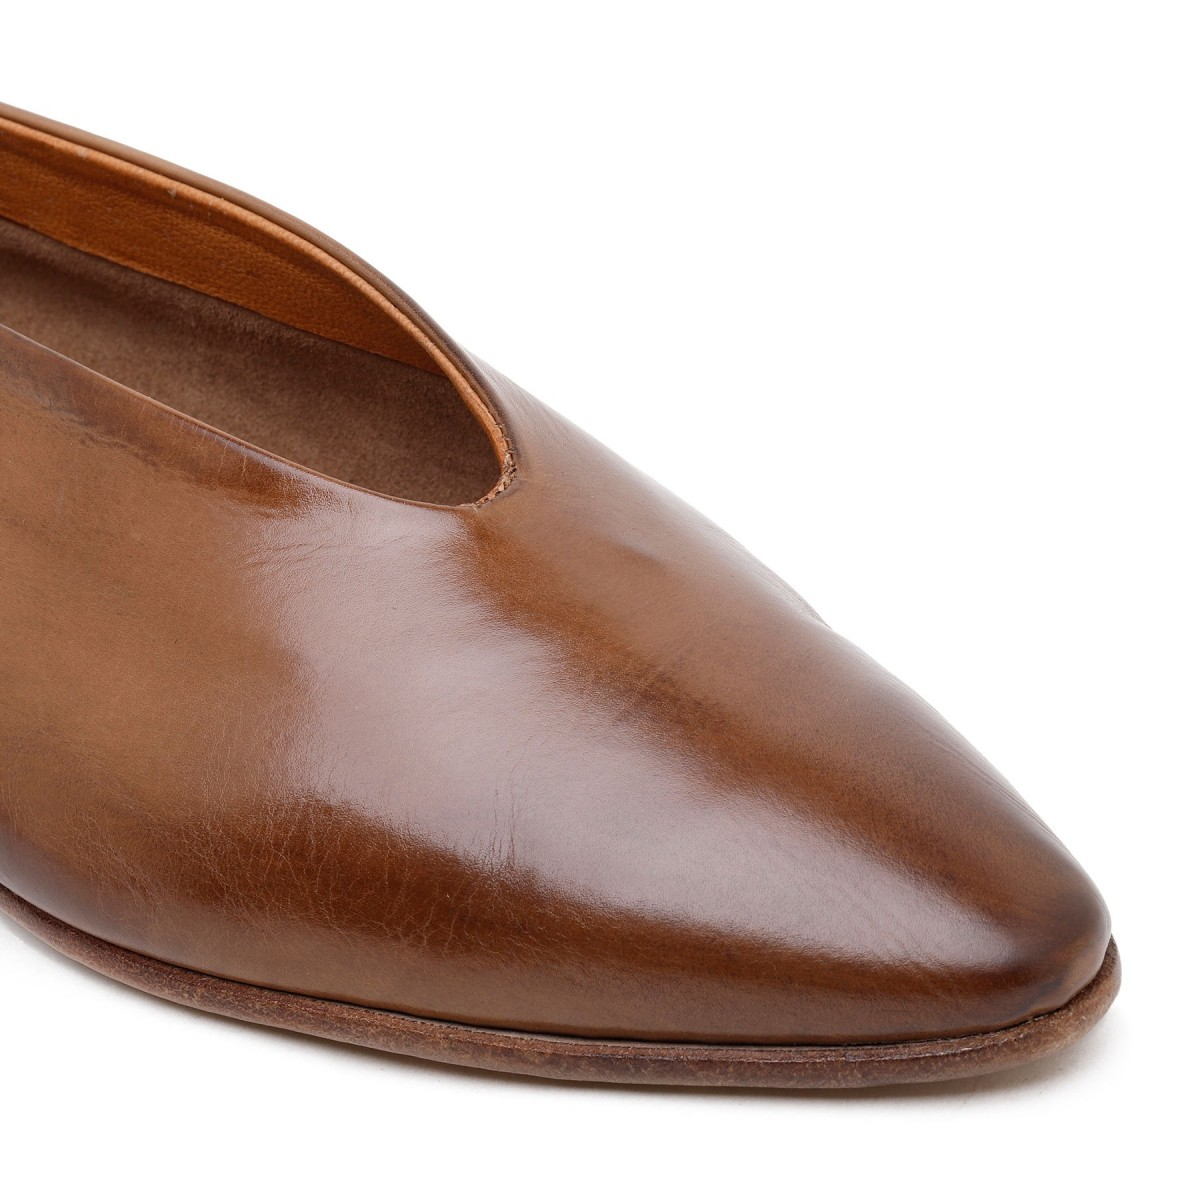 Brown calf leather slippers